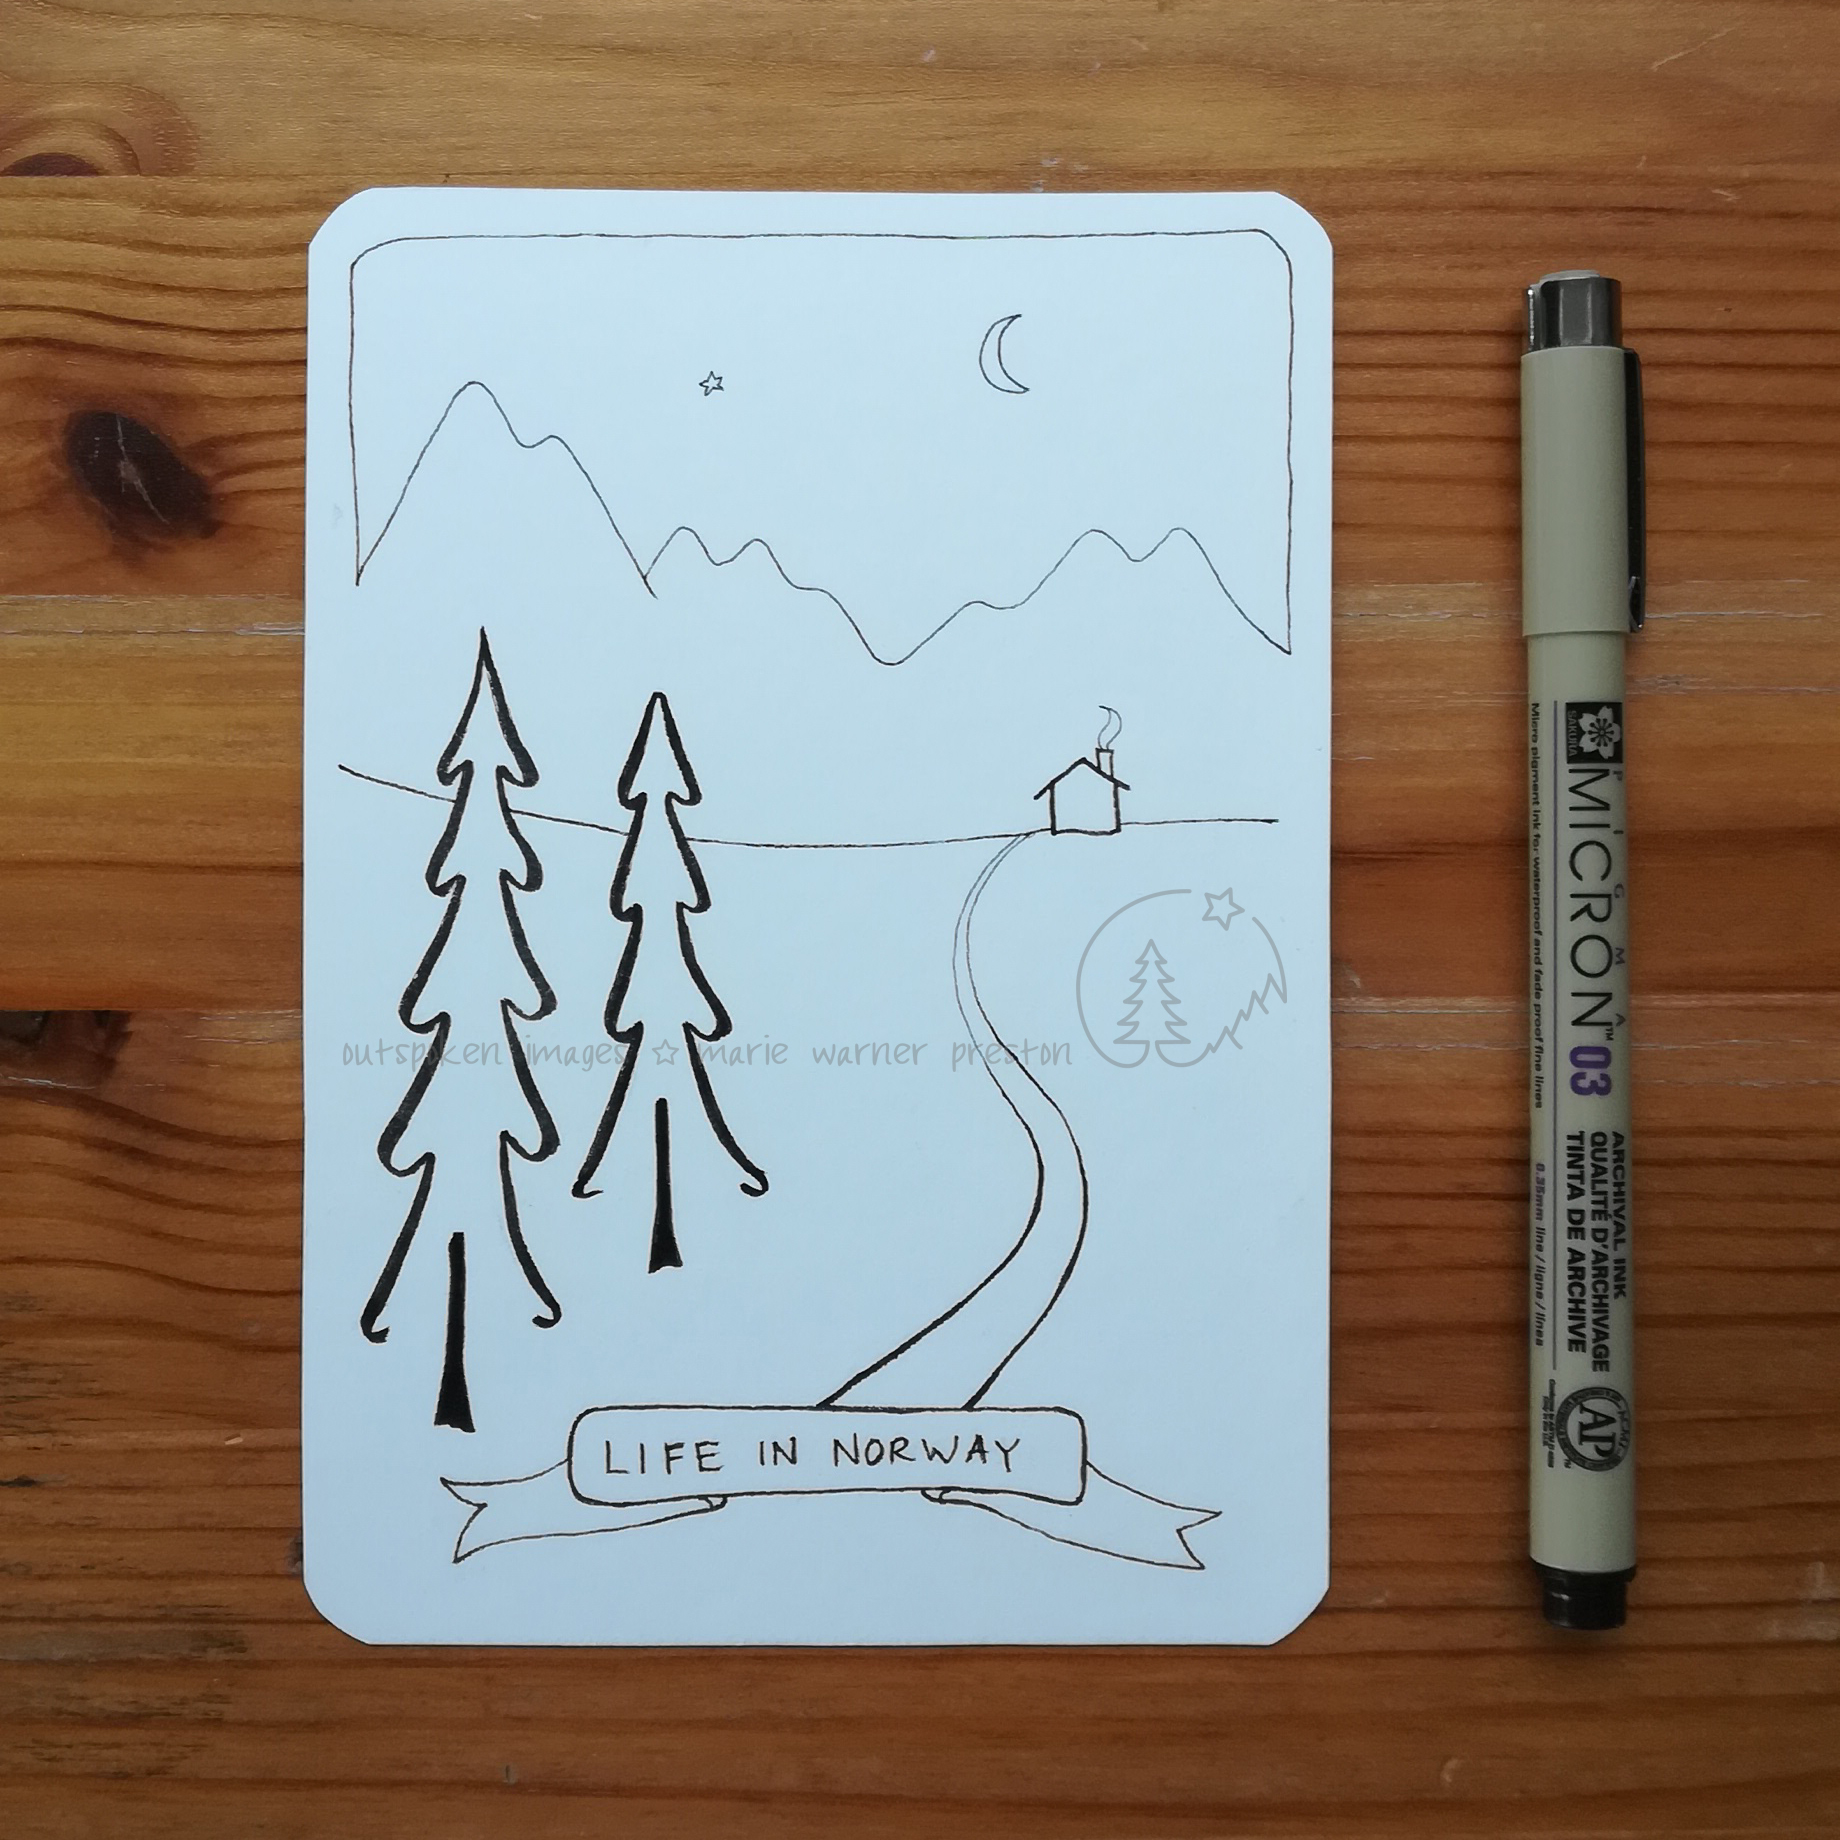 pen drawing of Life in Norway: pine trees, path, cabin, mountains, moon, star. ©2021 Outspoken Images by Marie Warner Preston